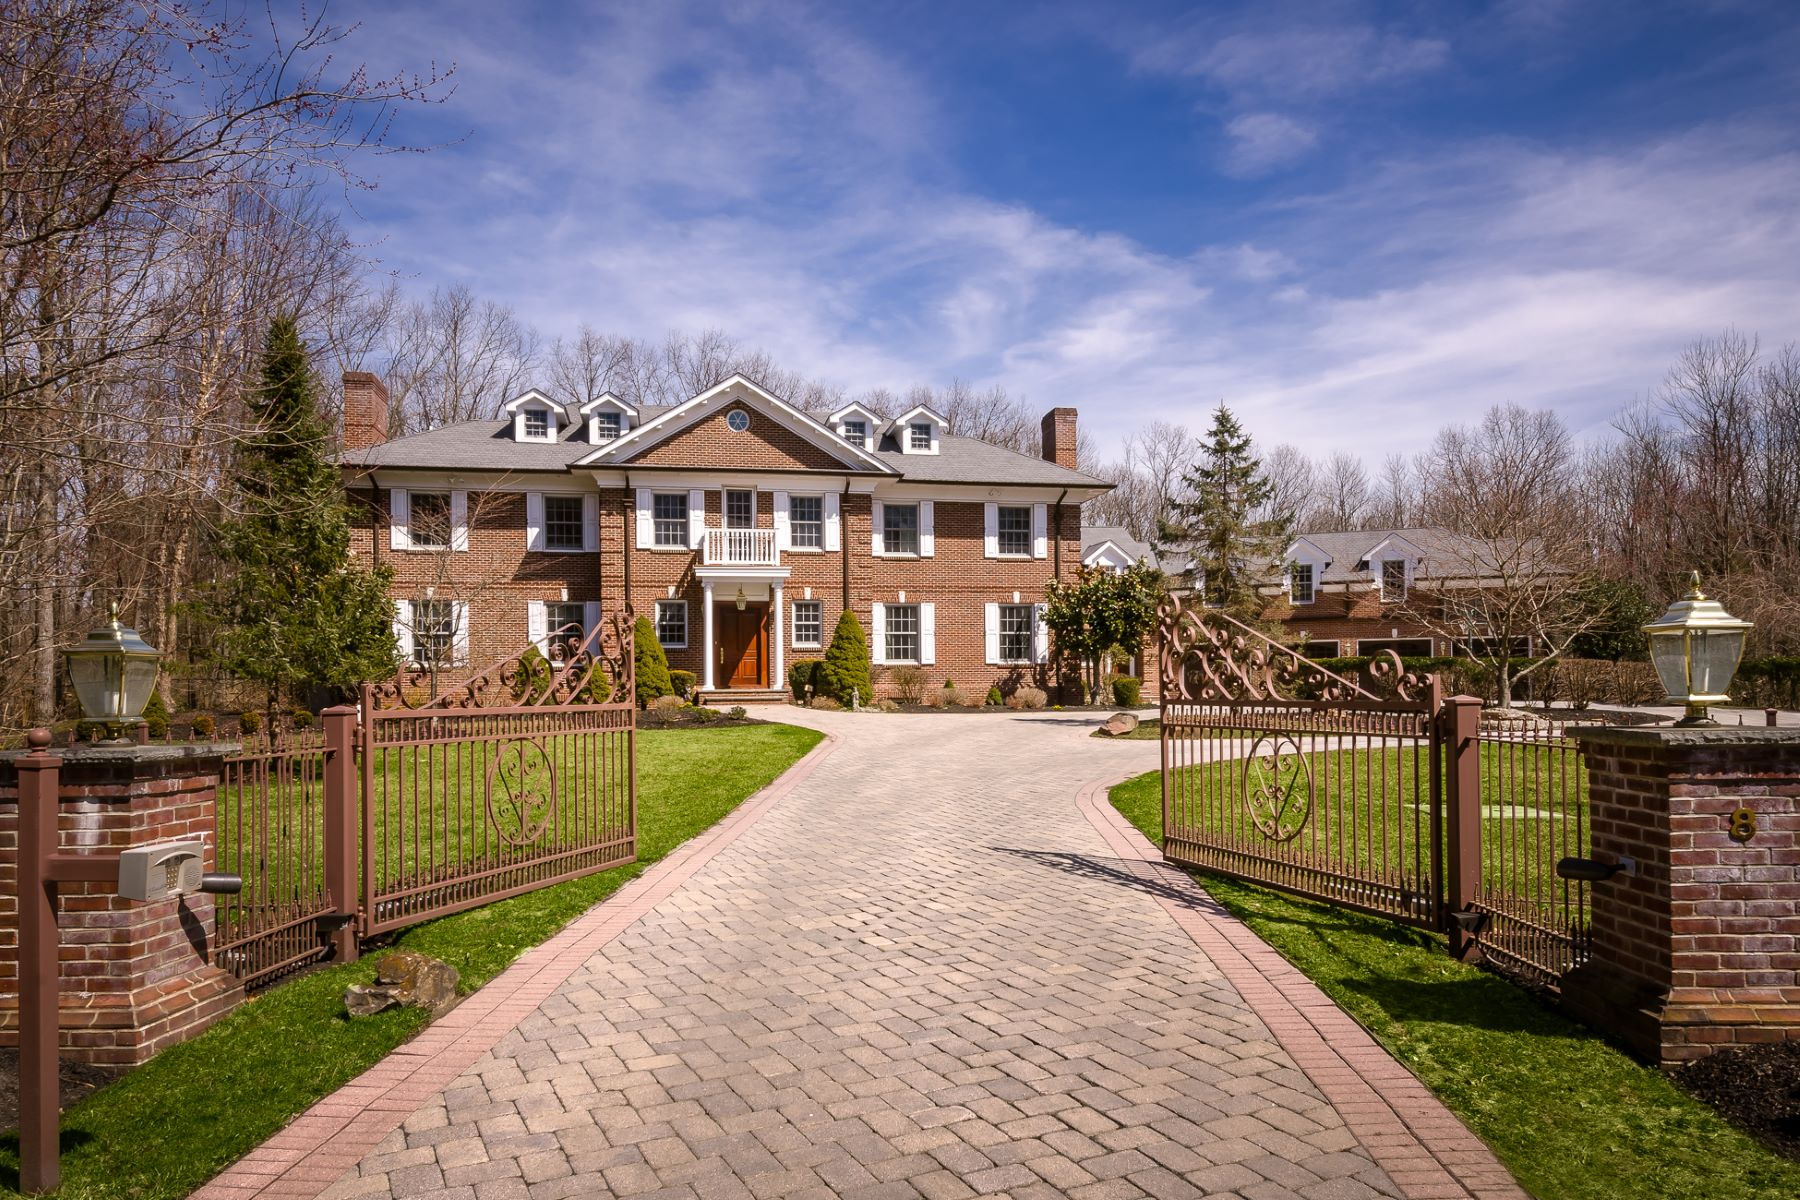 Single Family Homes por un Venta en Stonybrook Manor: Once-in-a-Lifetime Magnificence 8 Players Lane Princeton, Nueva Jersey 08540 Estados Unidos